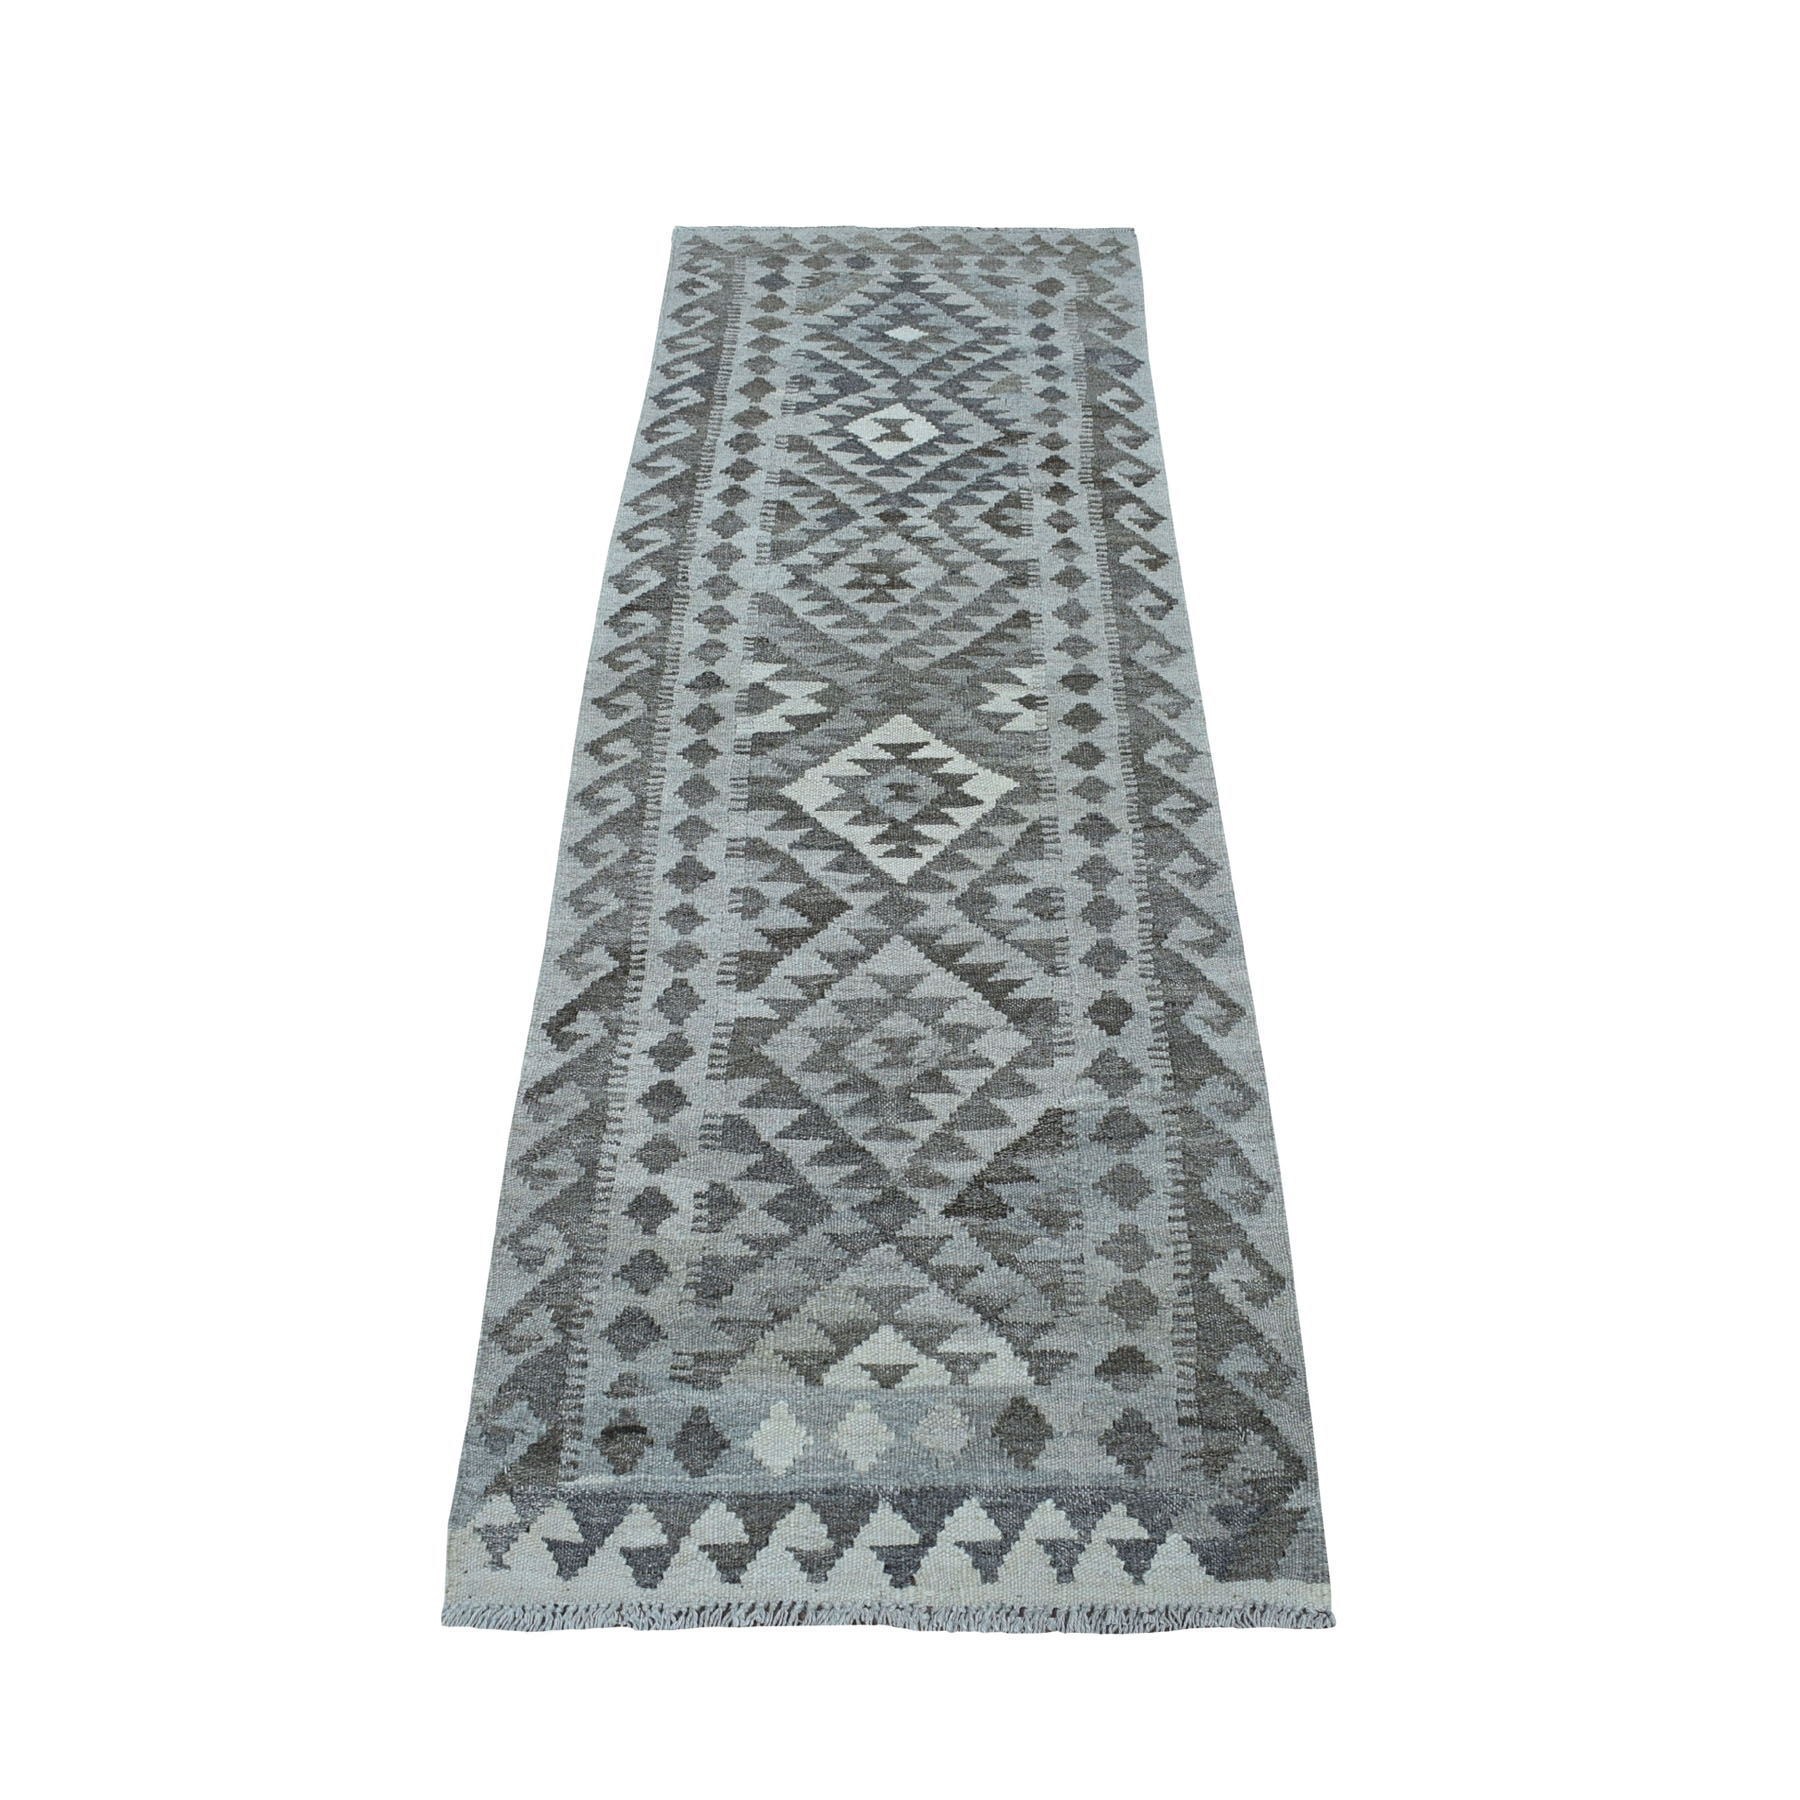 """2'1""""X6'3"""" Undyed Natural Wool Afghan Kilim Reversible Hand Woven Runner Oriental Rug moaec06a"""